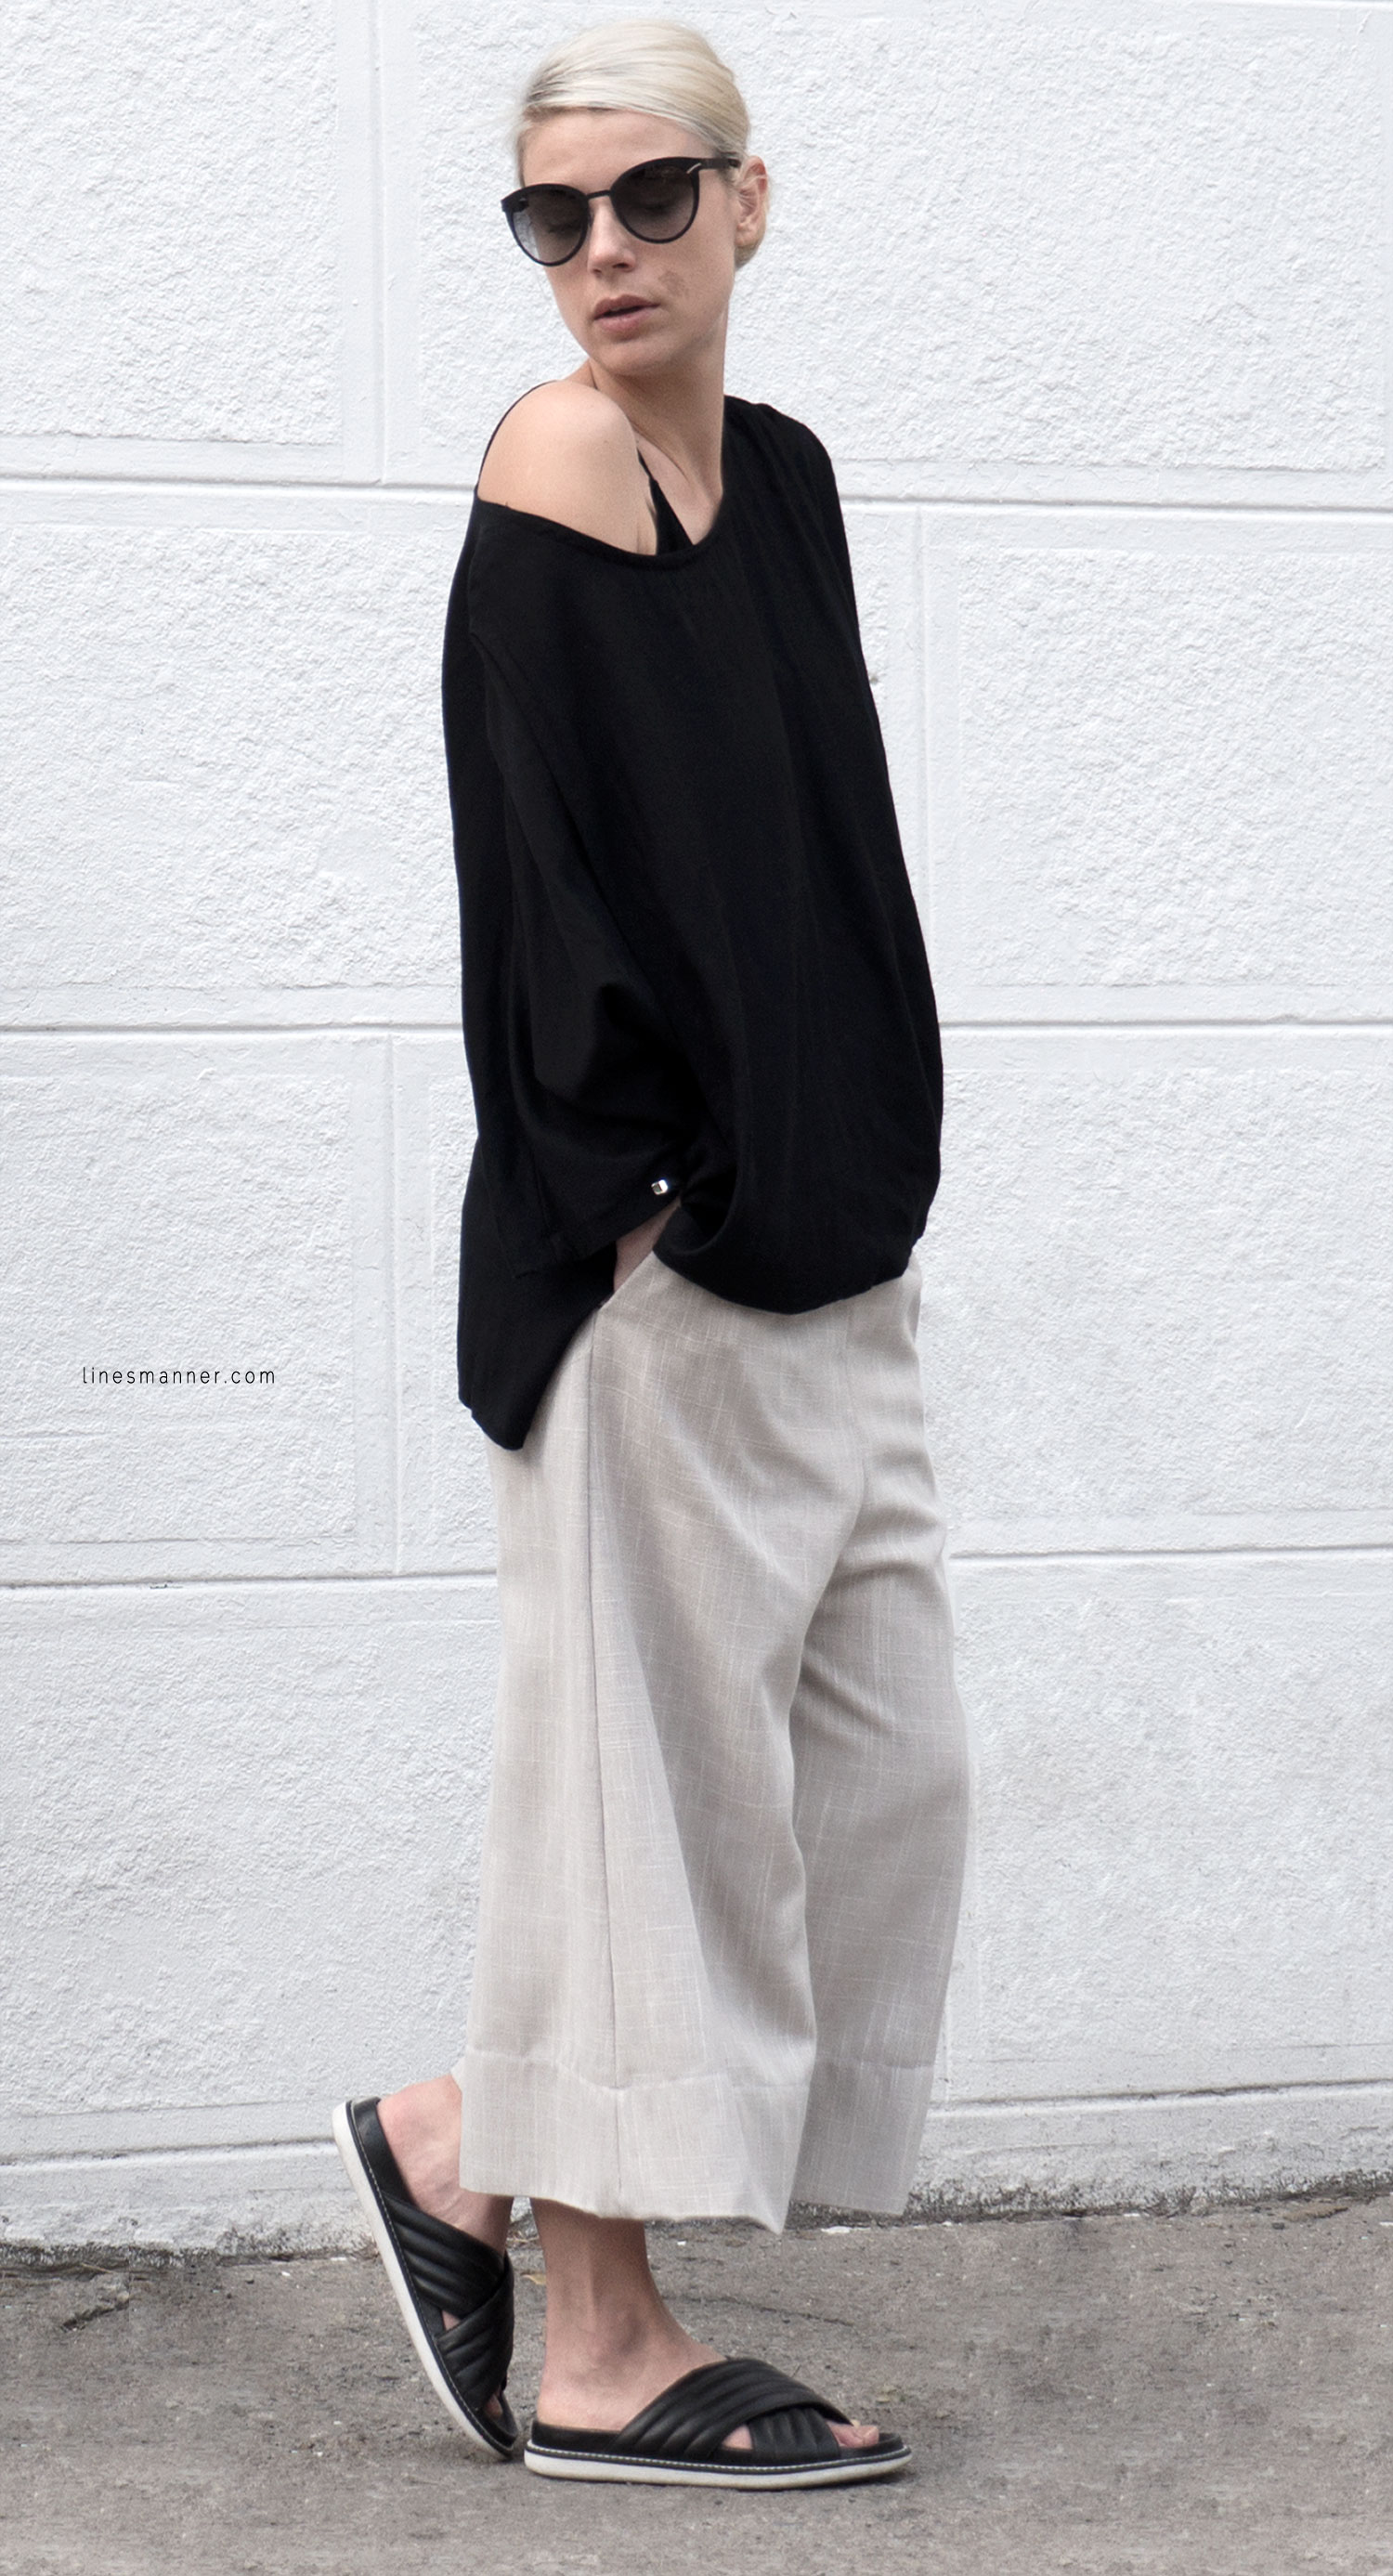 Lines-Manner-Modern-Minimal-Effortless-Casual-Wide_Leg_Culotte-Coidlyn_Wight-Draped-Coton-Linen-Sustainable-Slow_Fashion-Neutrals-Structure-Volume-Fluid-Simplicity-Details-5